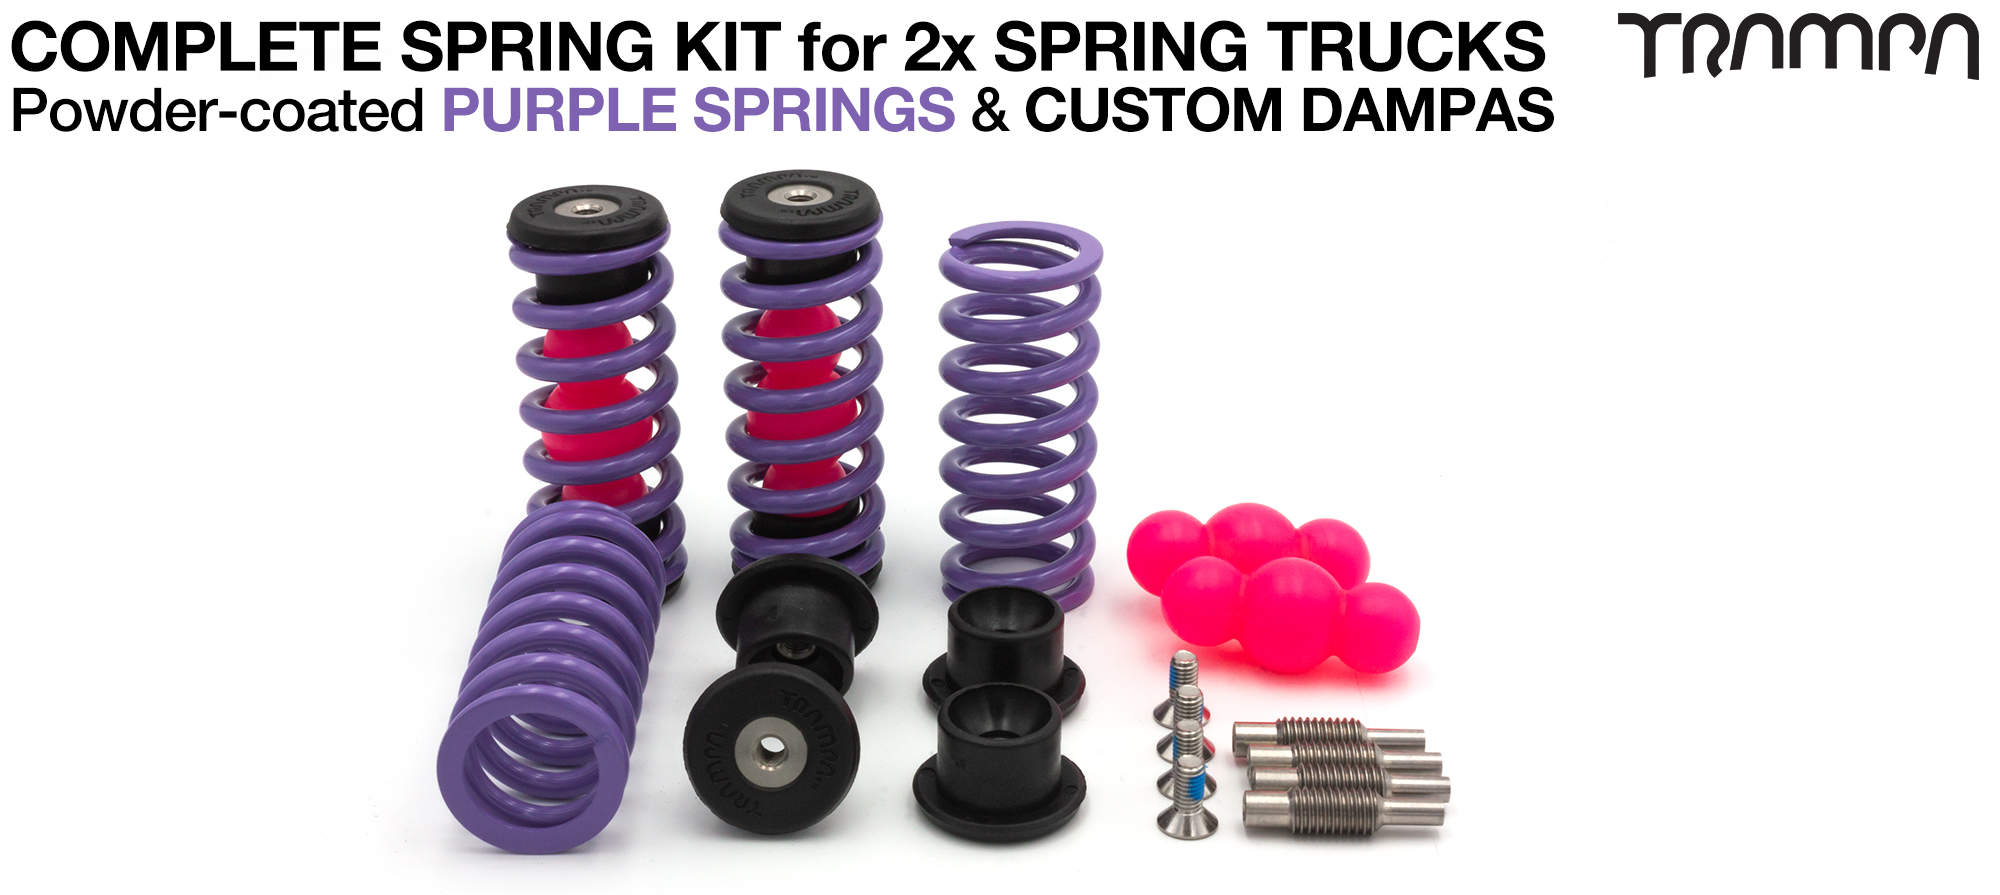 Powder Coated Springs - PURPLE